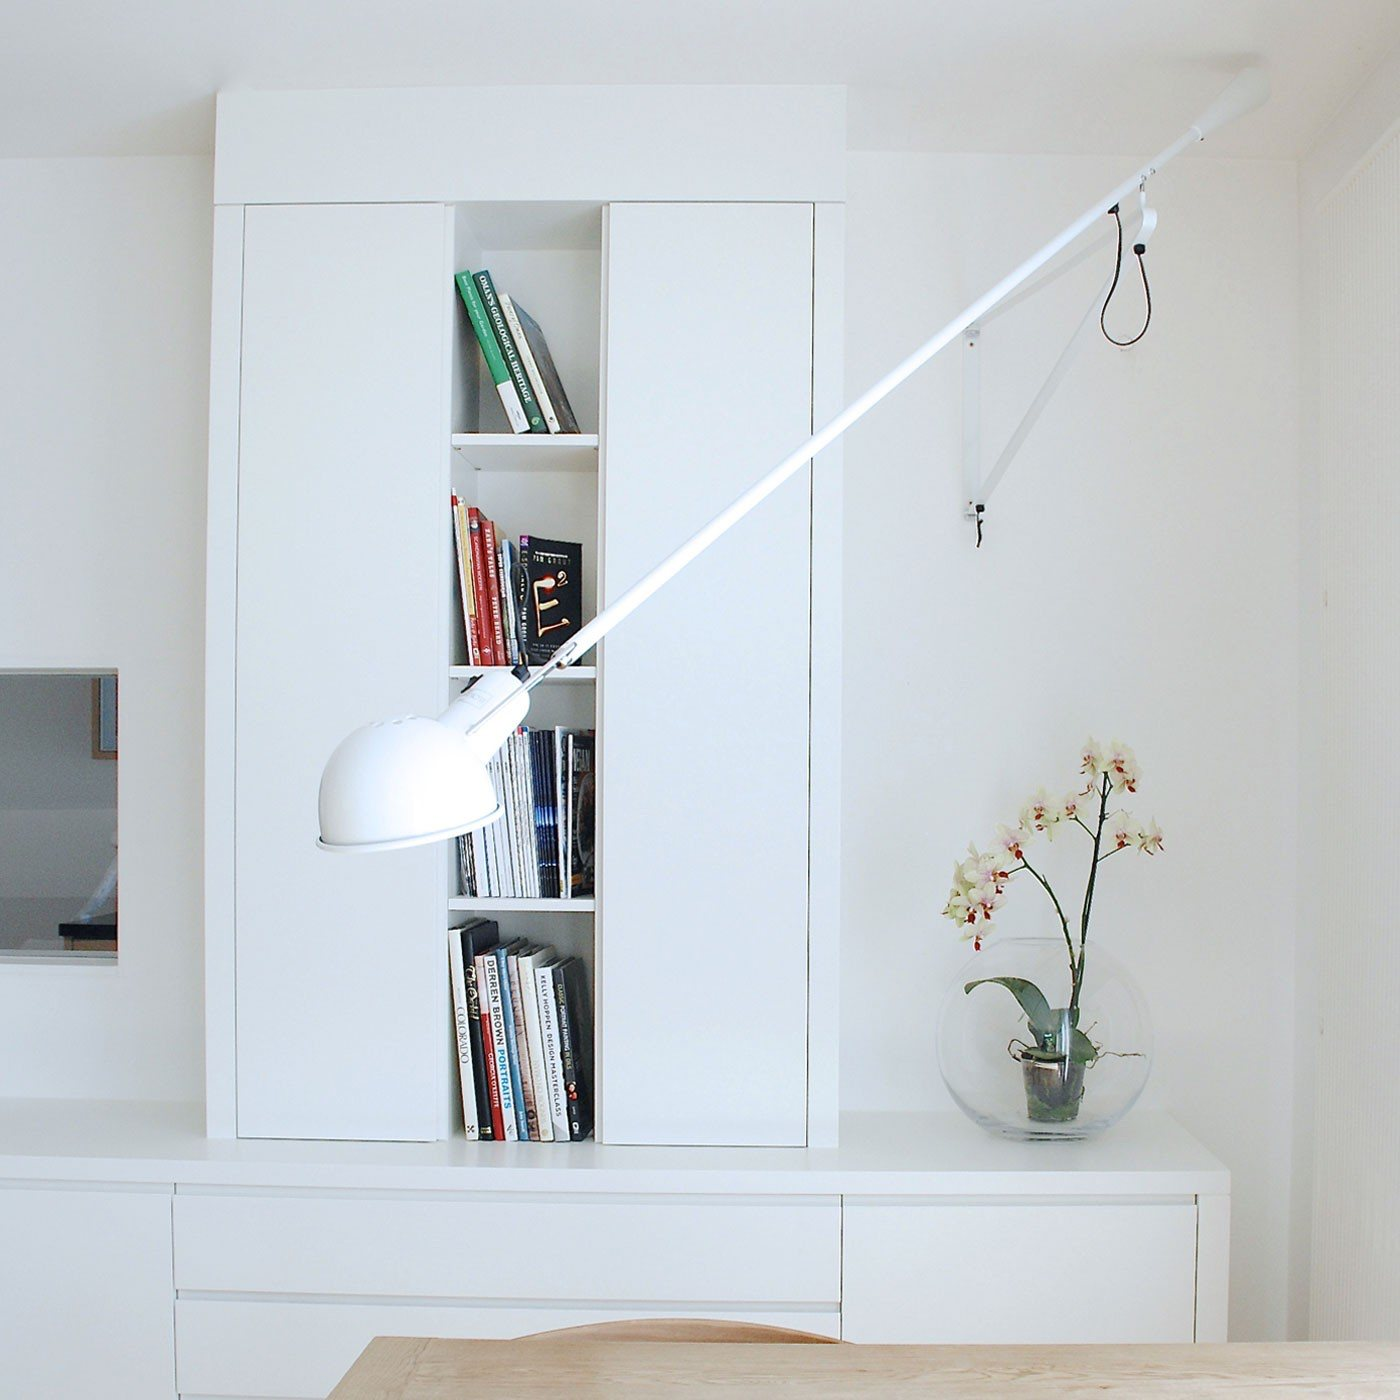 265 Wall Lamp by Paolo Rizzatto for Flos